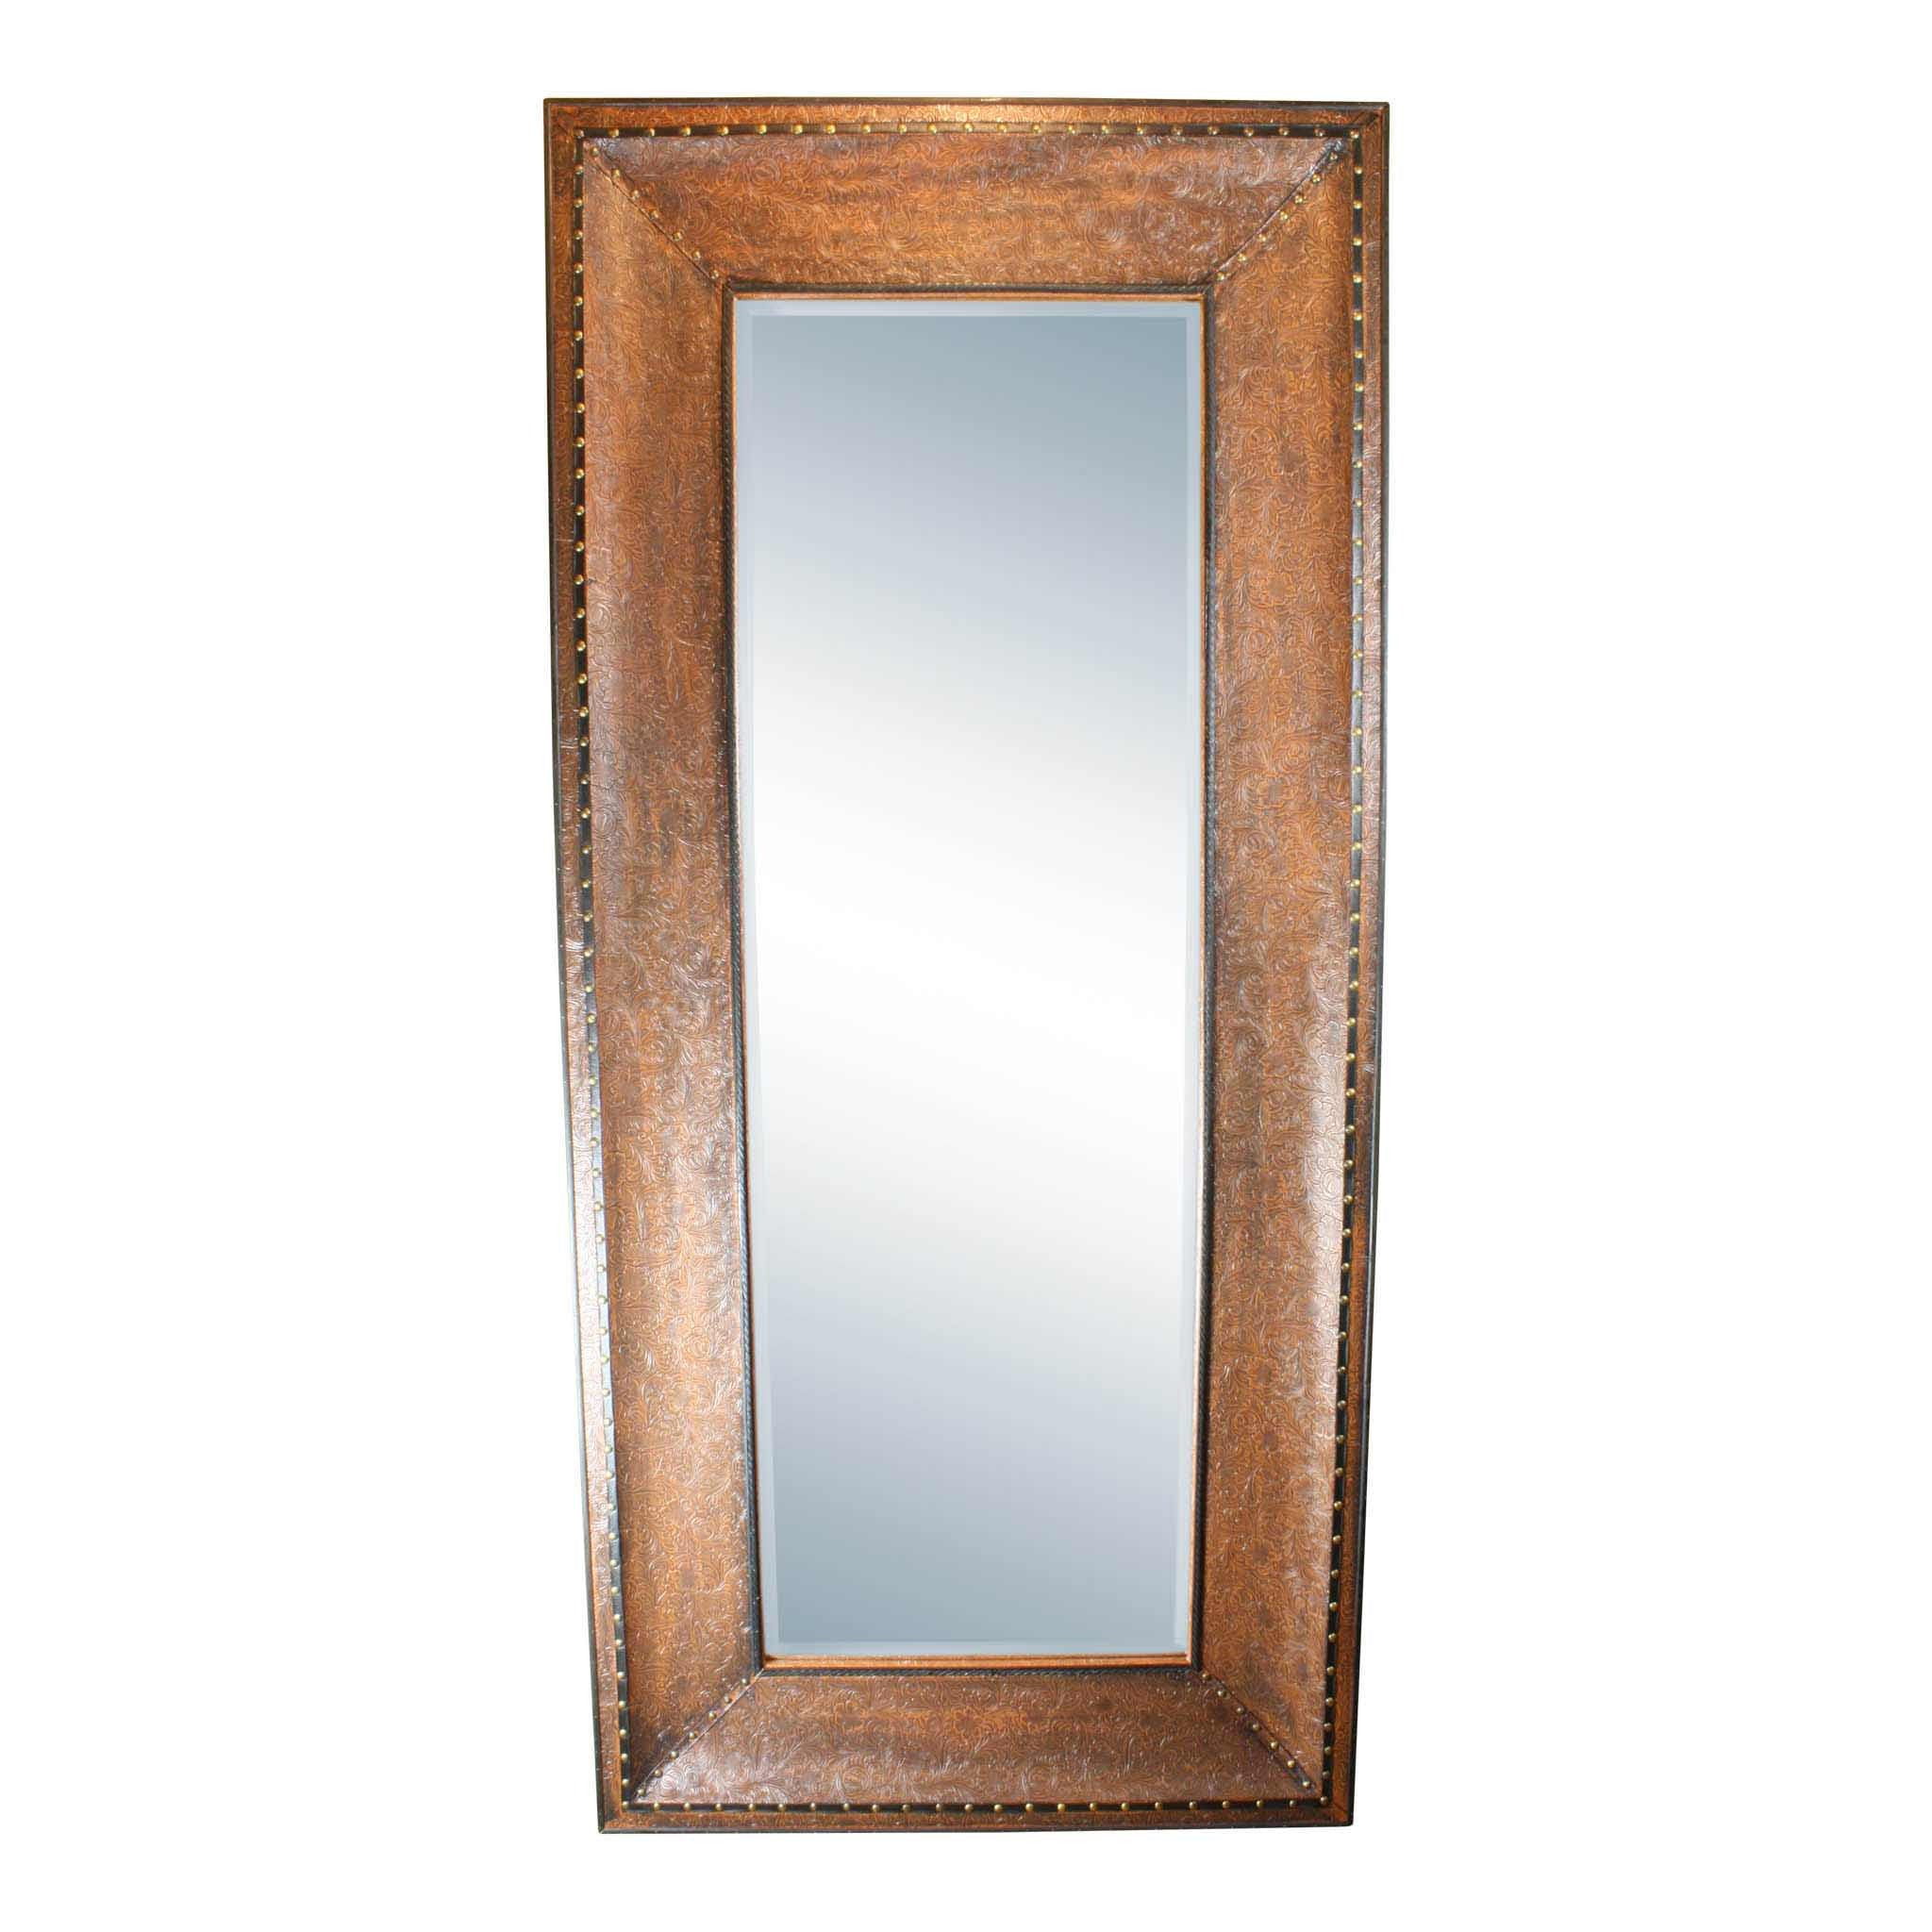 Mirror with Embossed Brown Leather Frame - Ski Country Antiques & Home